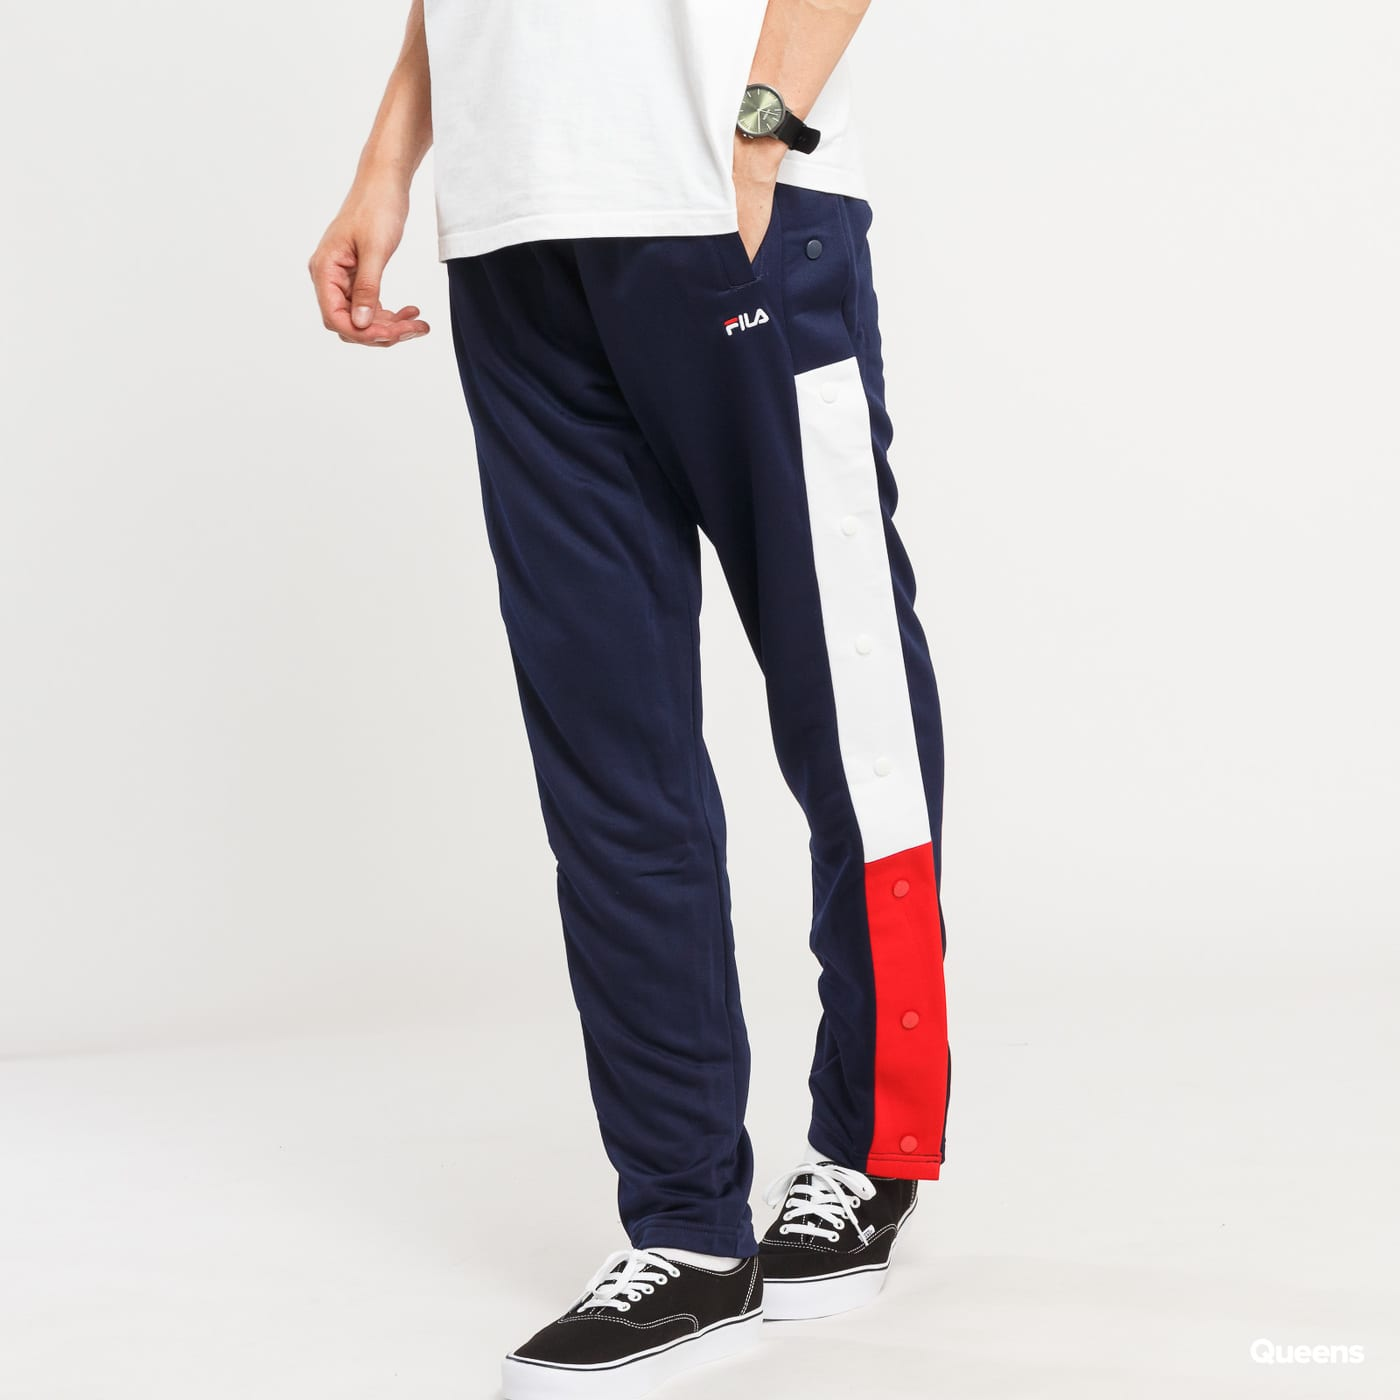 1a5addccd5729 Tepláky Fila Marcus Track Pants (682156 003) – Queens 💚